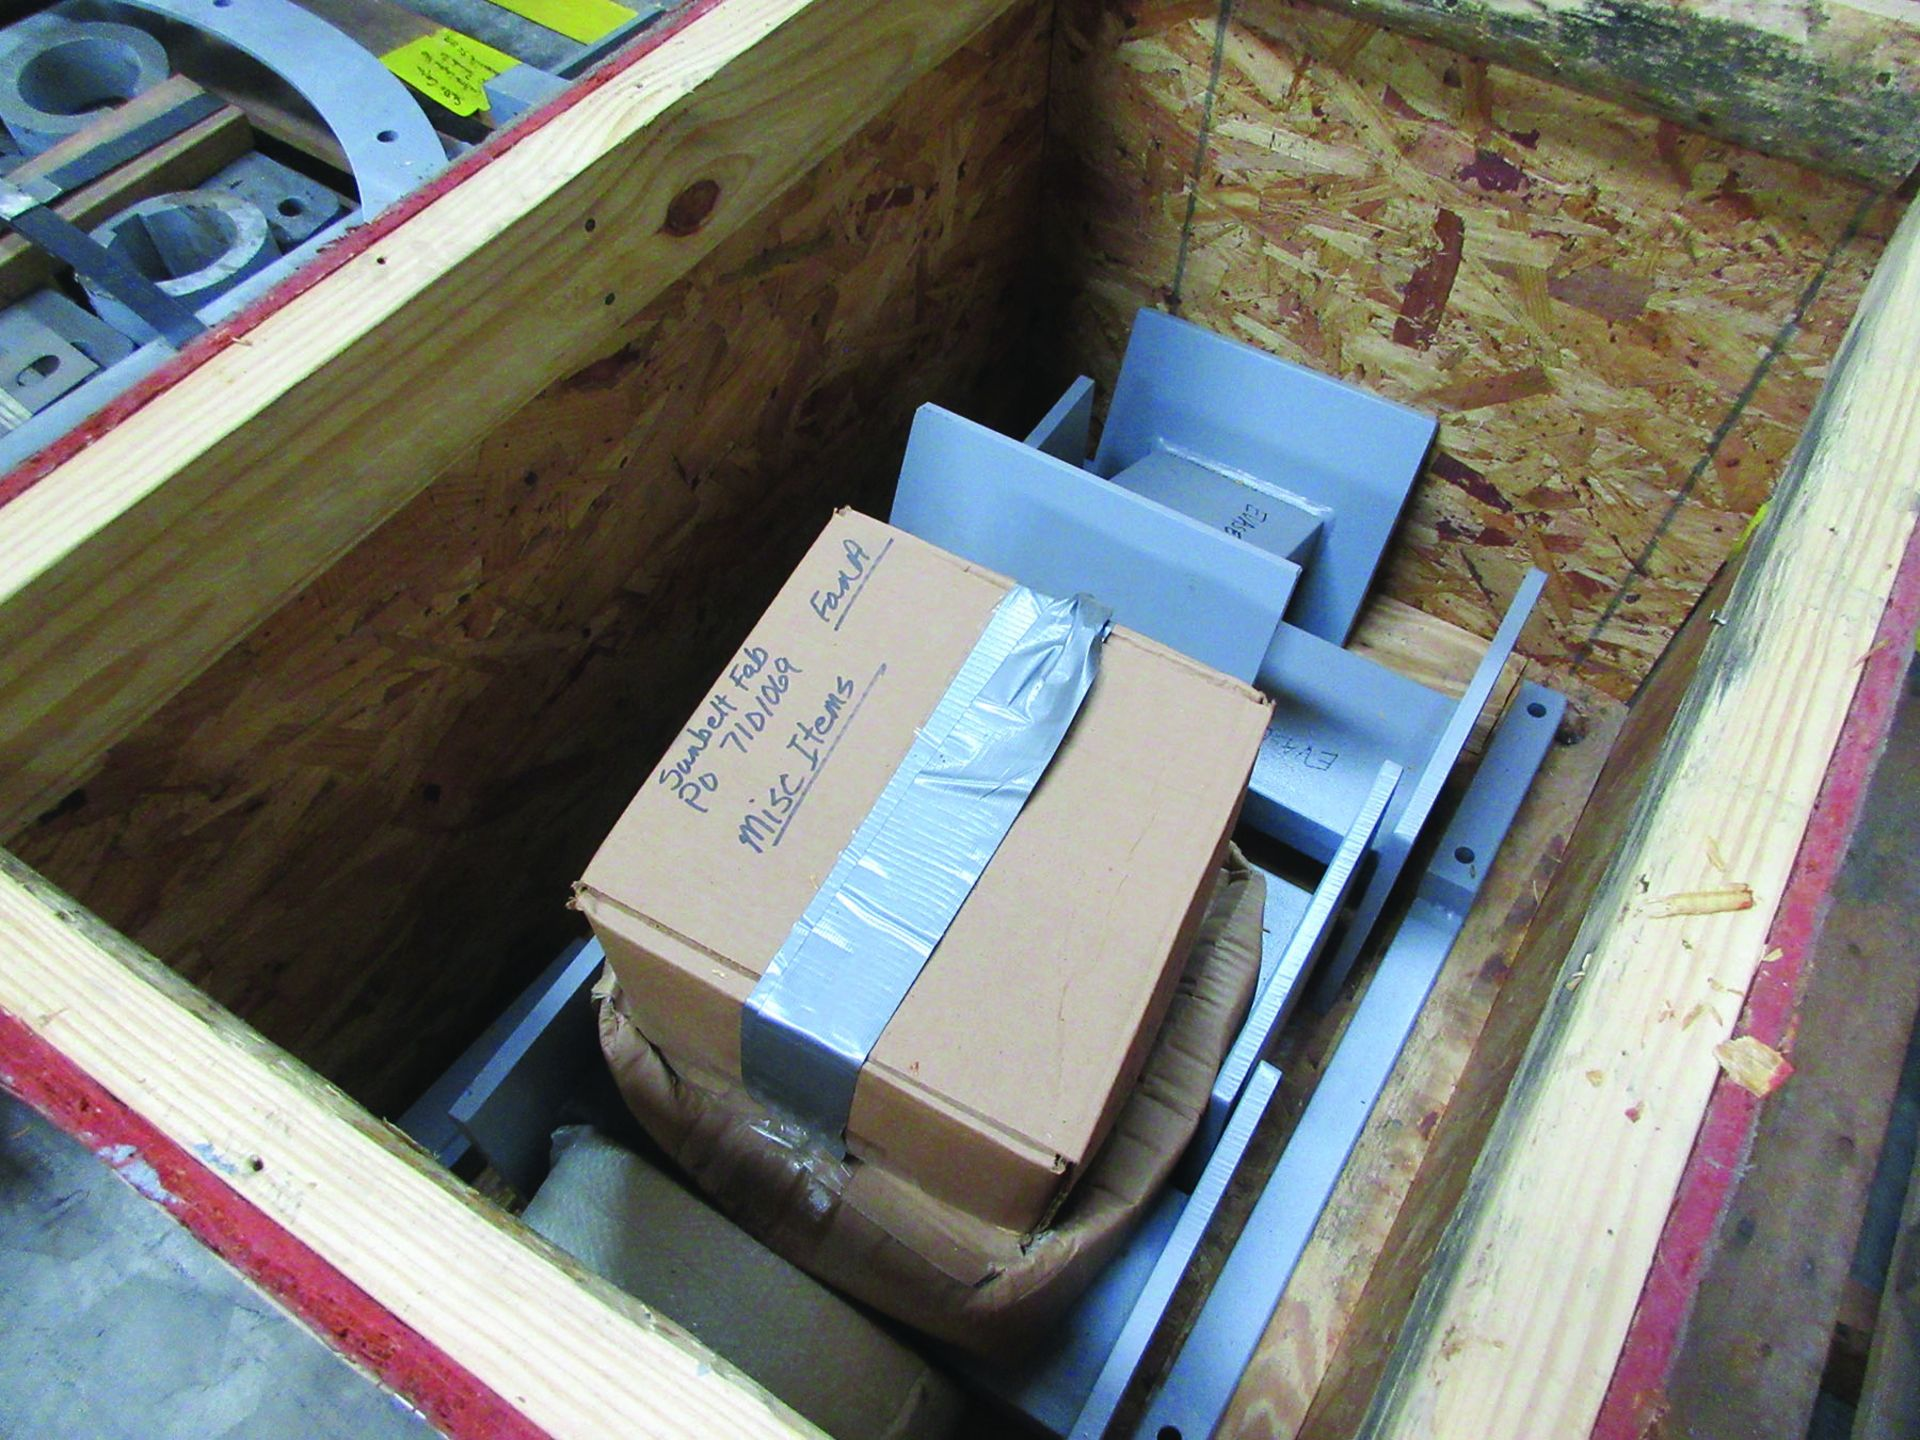 LOT OF ASSORTED PARTS: BARSETS, SHAFT COUPLINGS, COUPLING GUARDS, AND MORE, GRID A7 - Image 15 of 16